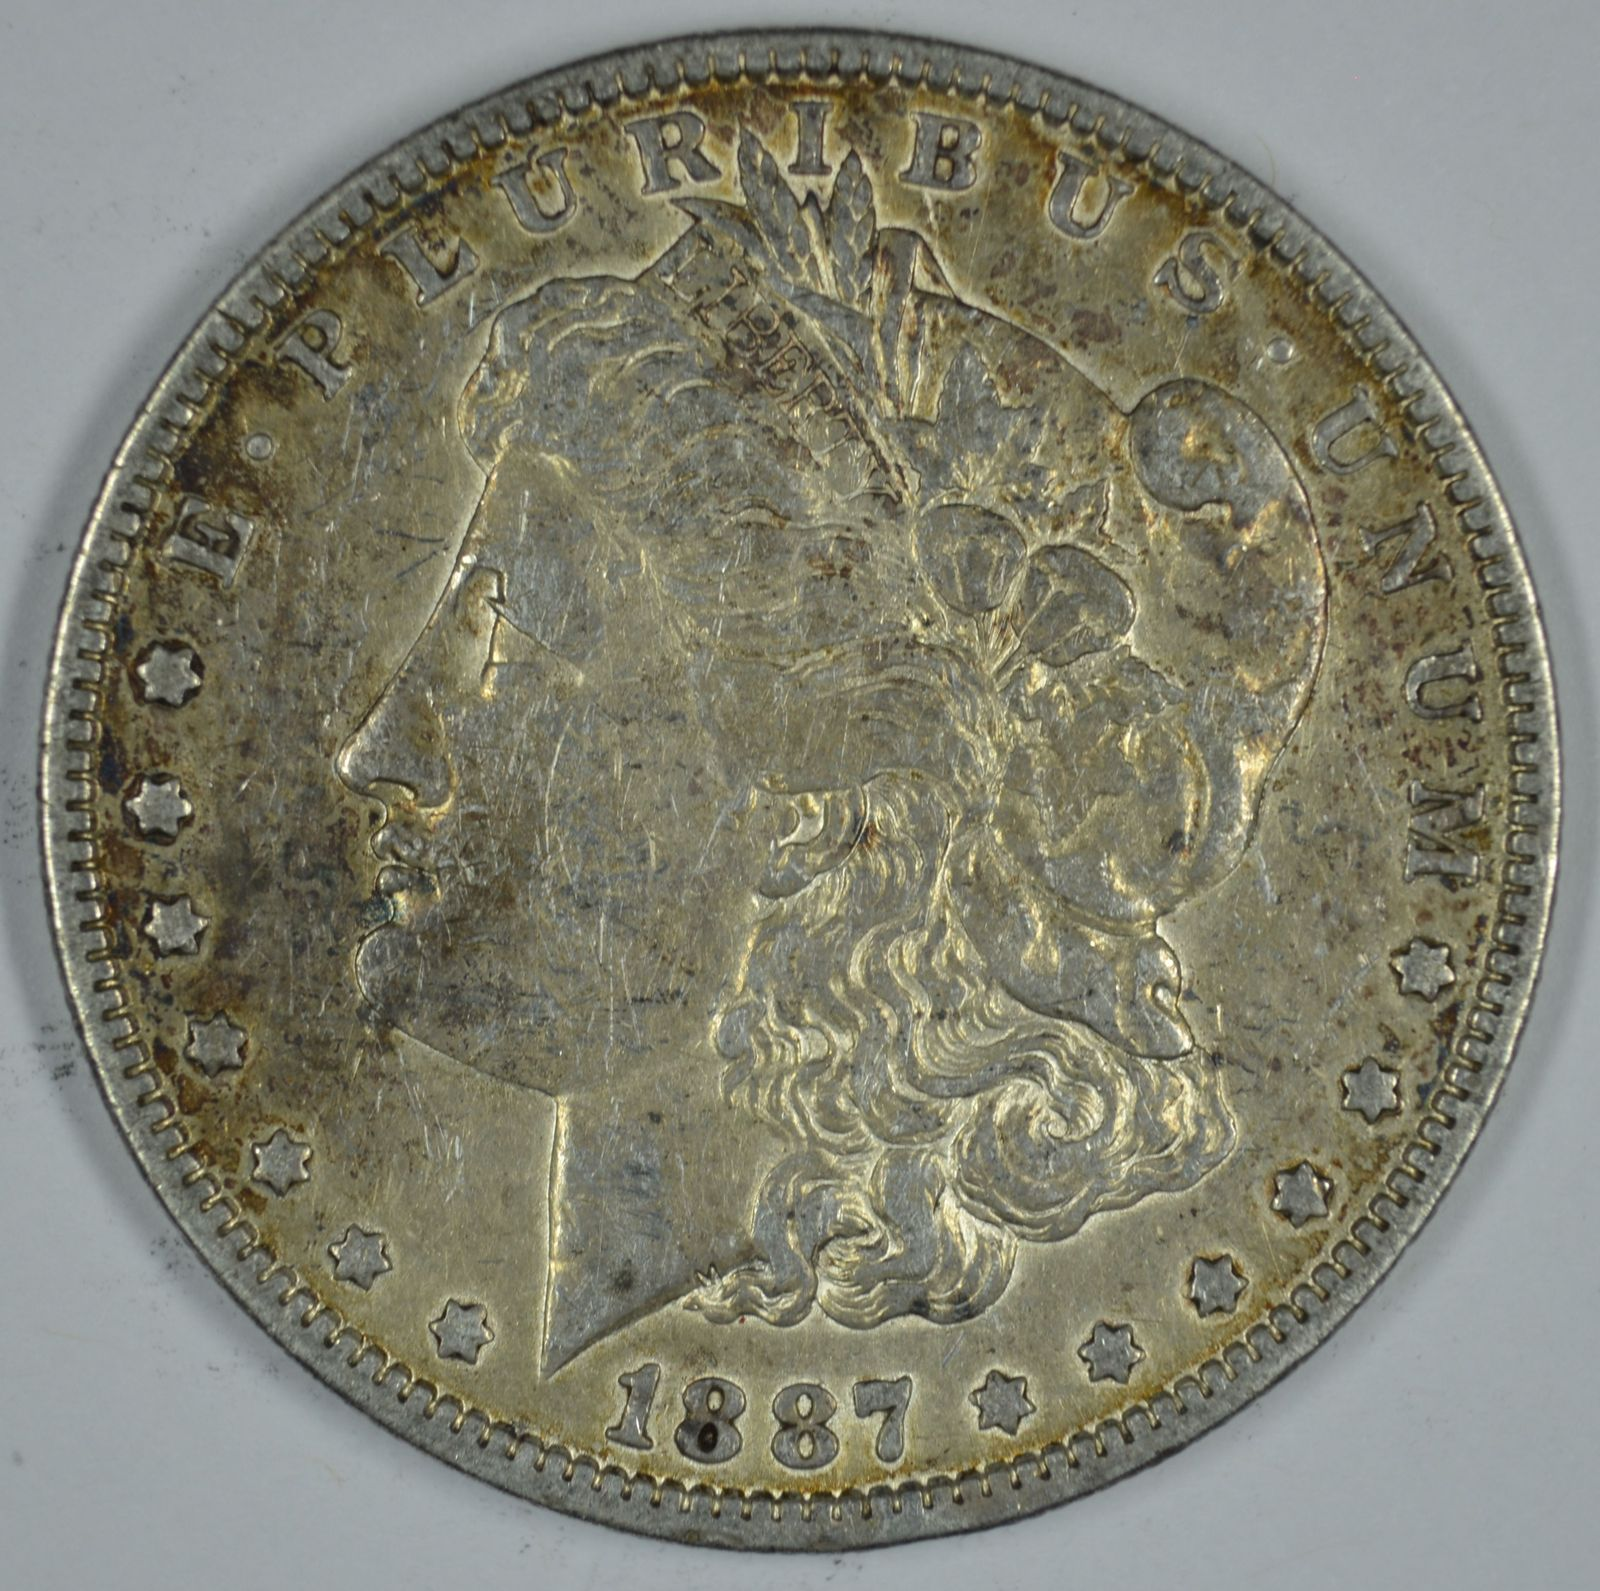 Primary image for 1887 O Morgan circulated silver dollar VF details